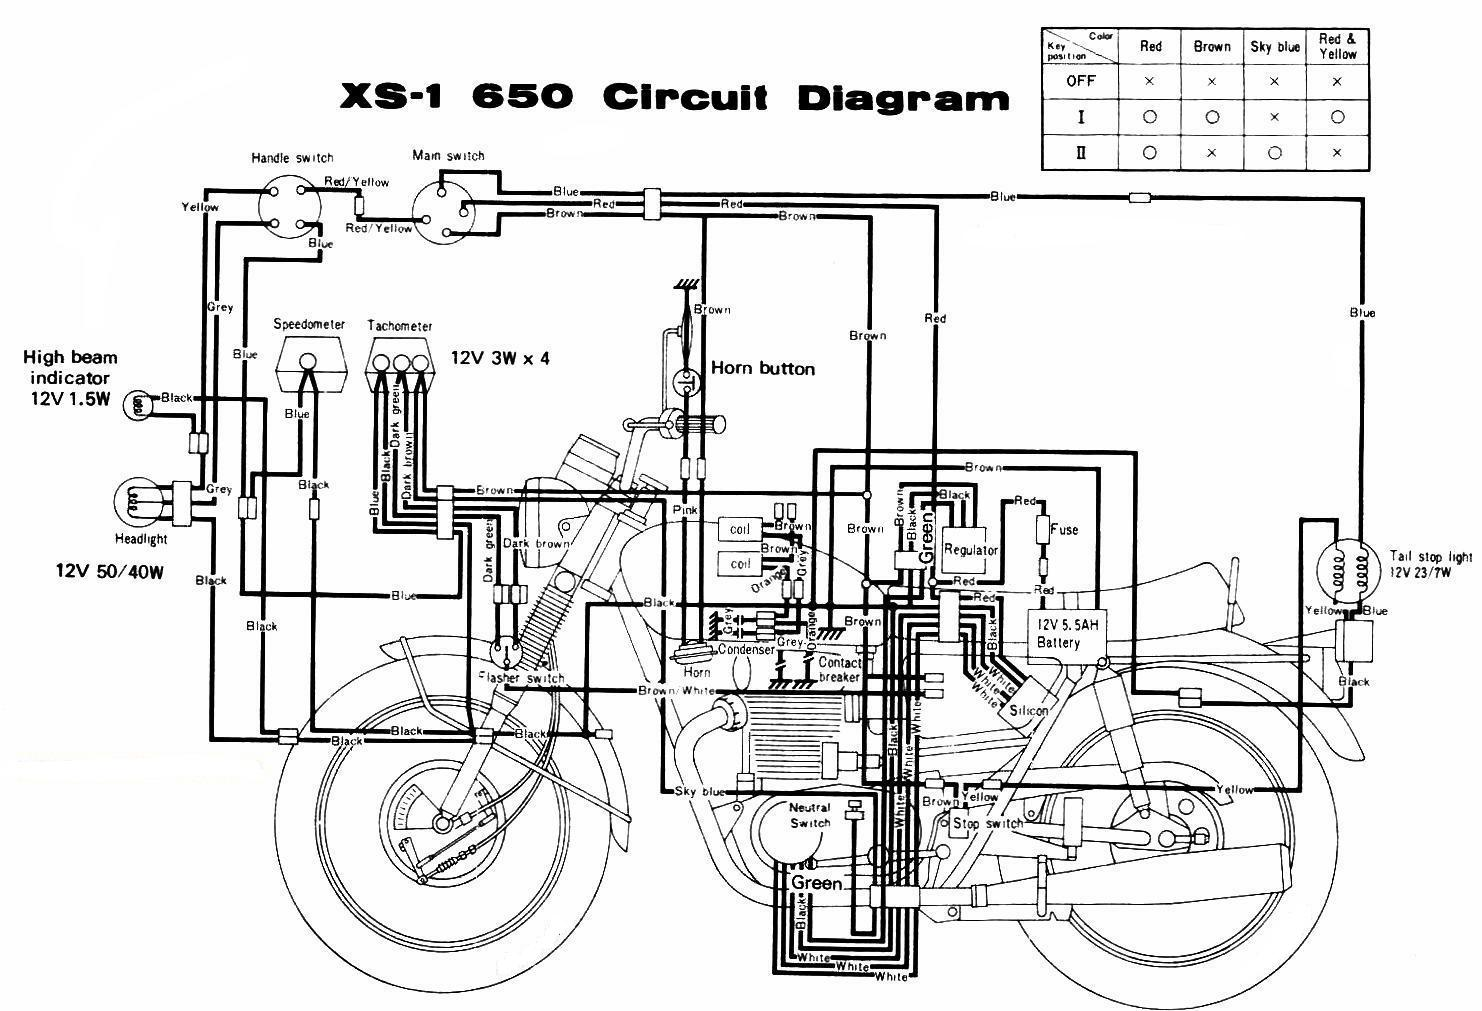 wiring diagrams rh oregonmotorcycleparts com cdi motorcycle wiring diagram pdf yamaha motorcycle wiring diagram pdf